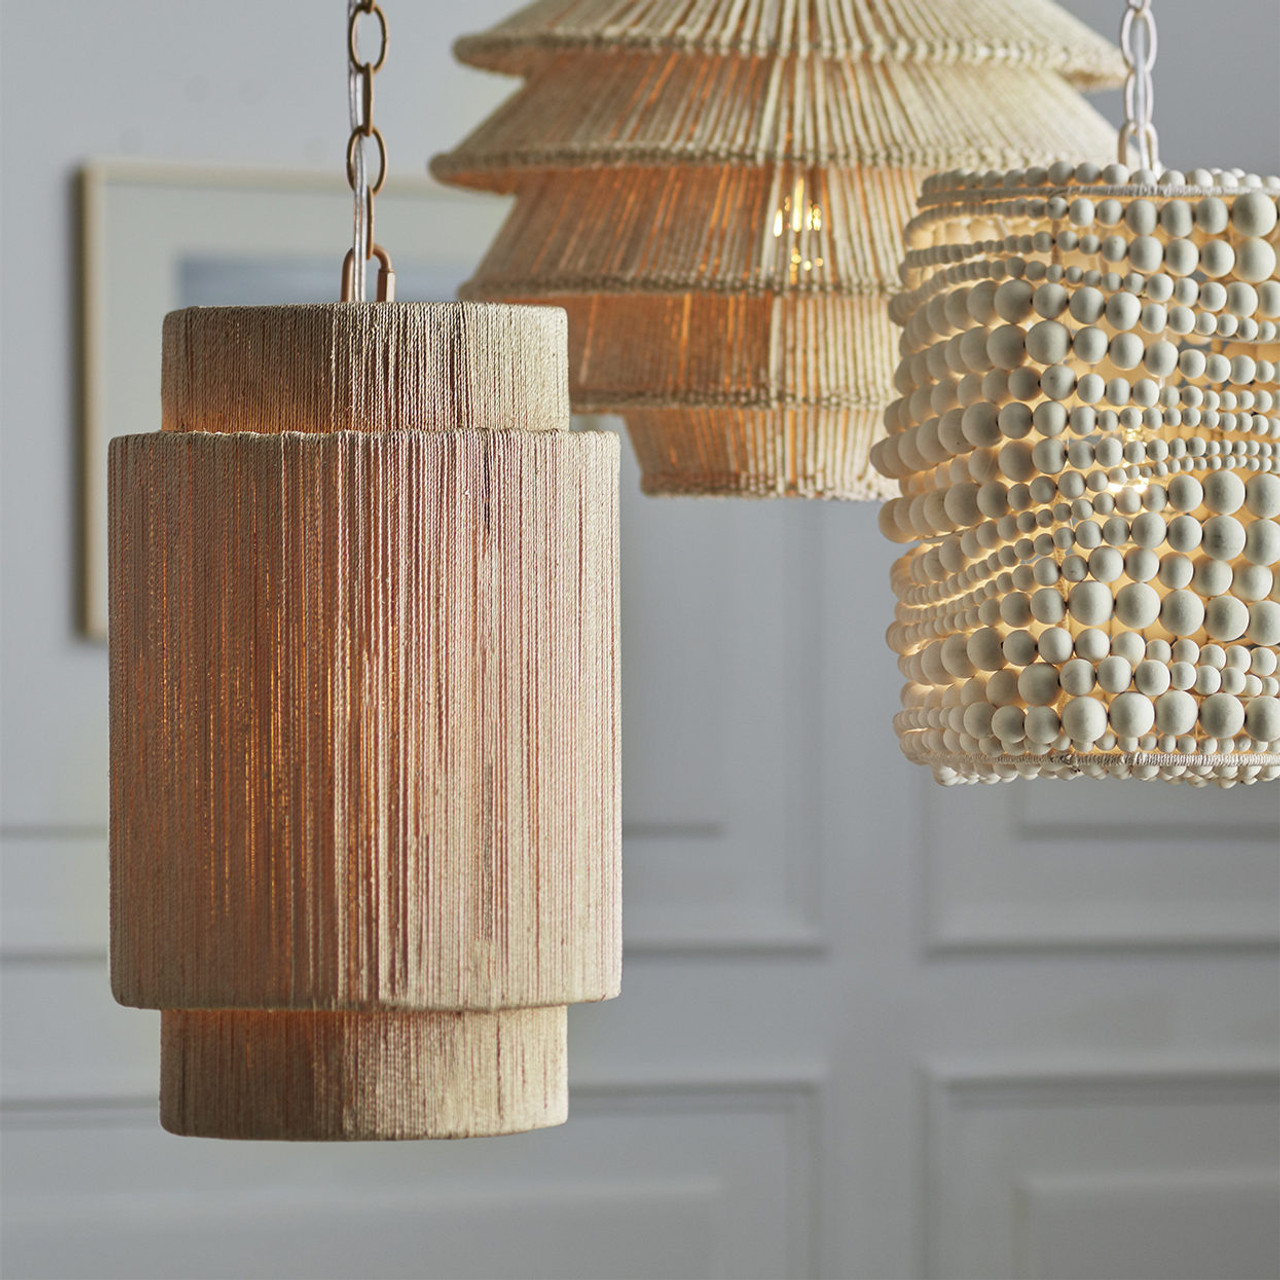 Abaca Rope Pendant - Small